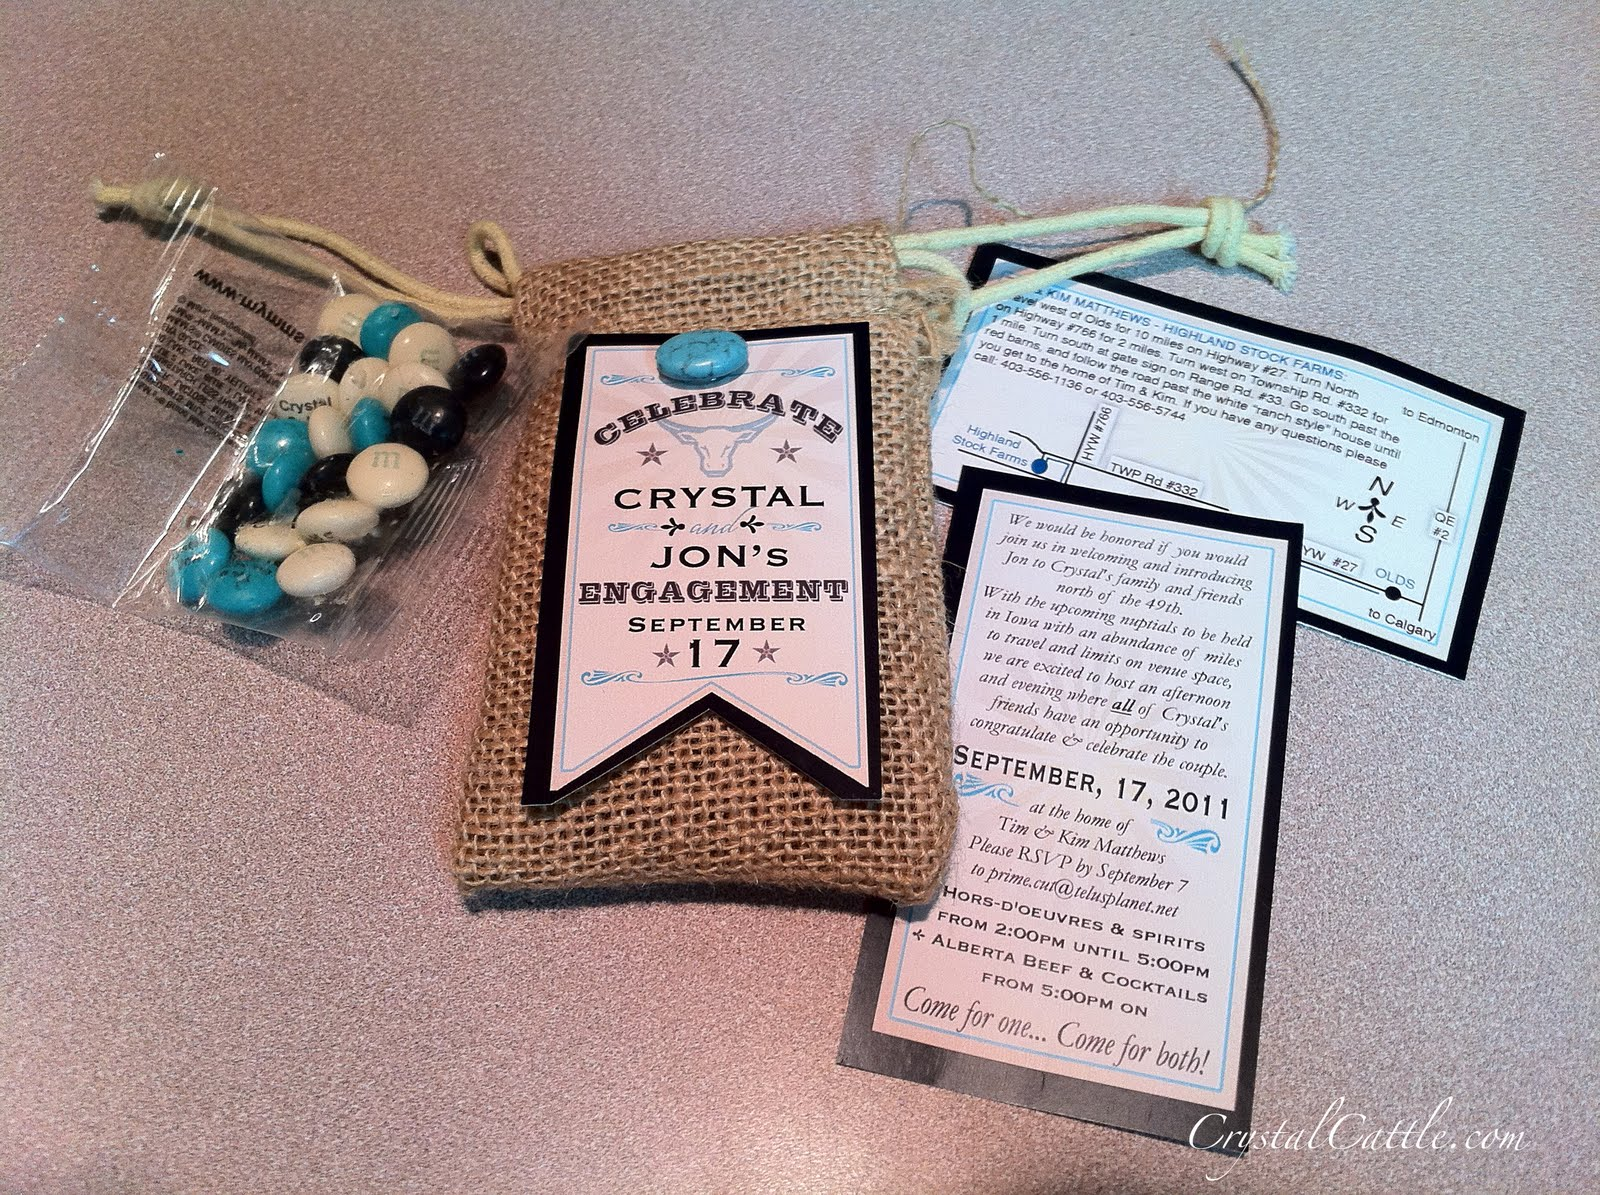 Wedding Invitations Turquoise: Crystal Cattle: Turquoise Wedding Invites